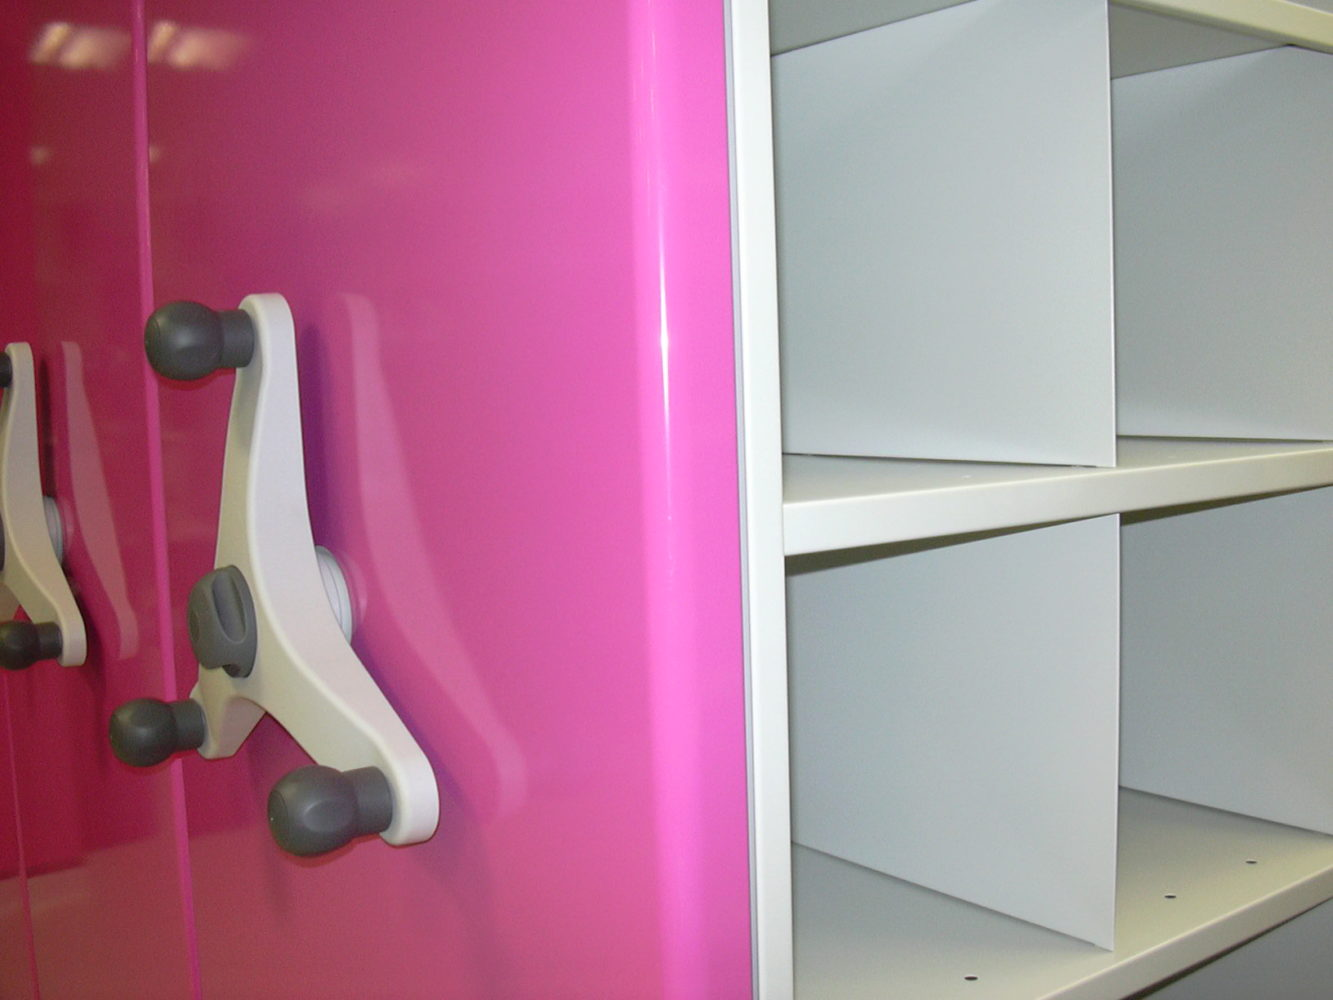 The main advantage of roller storage is the large increase in volume it gives when compared to static shelves.